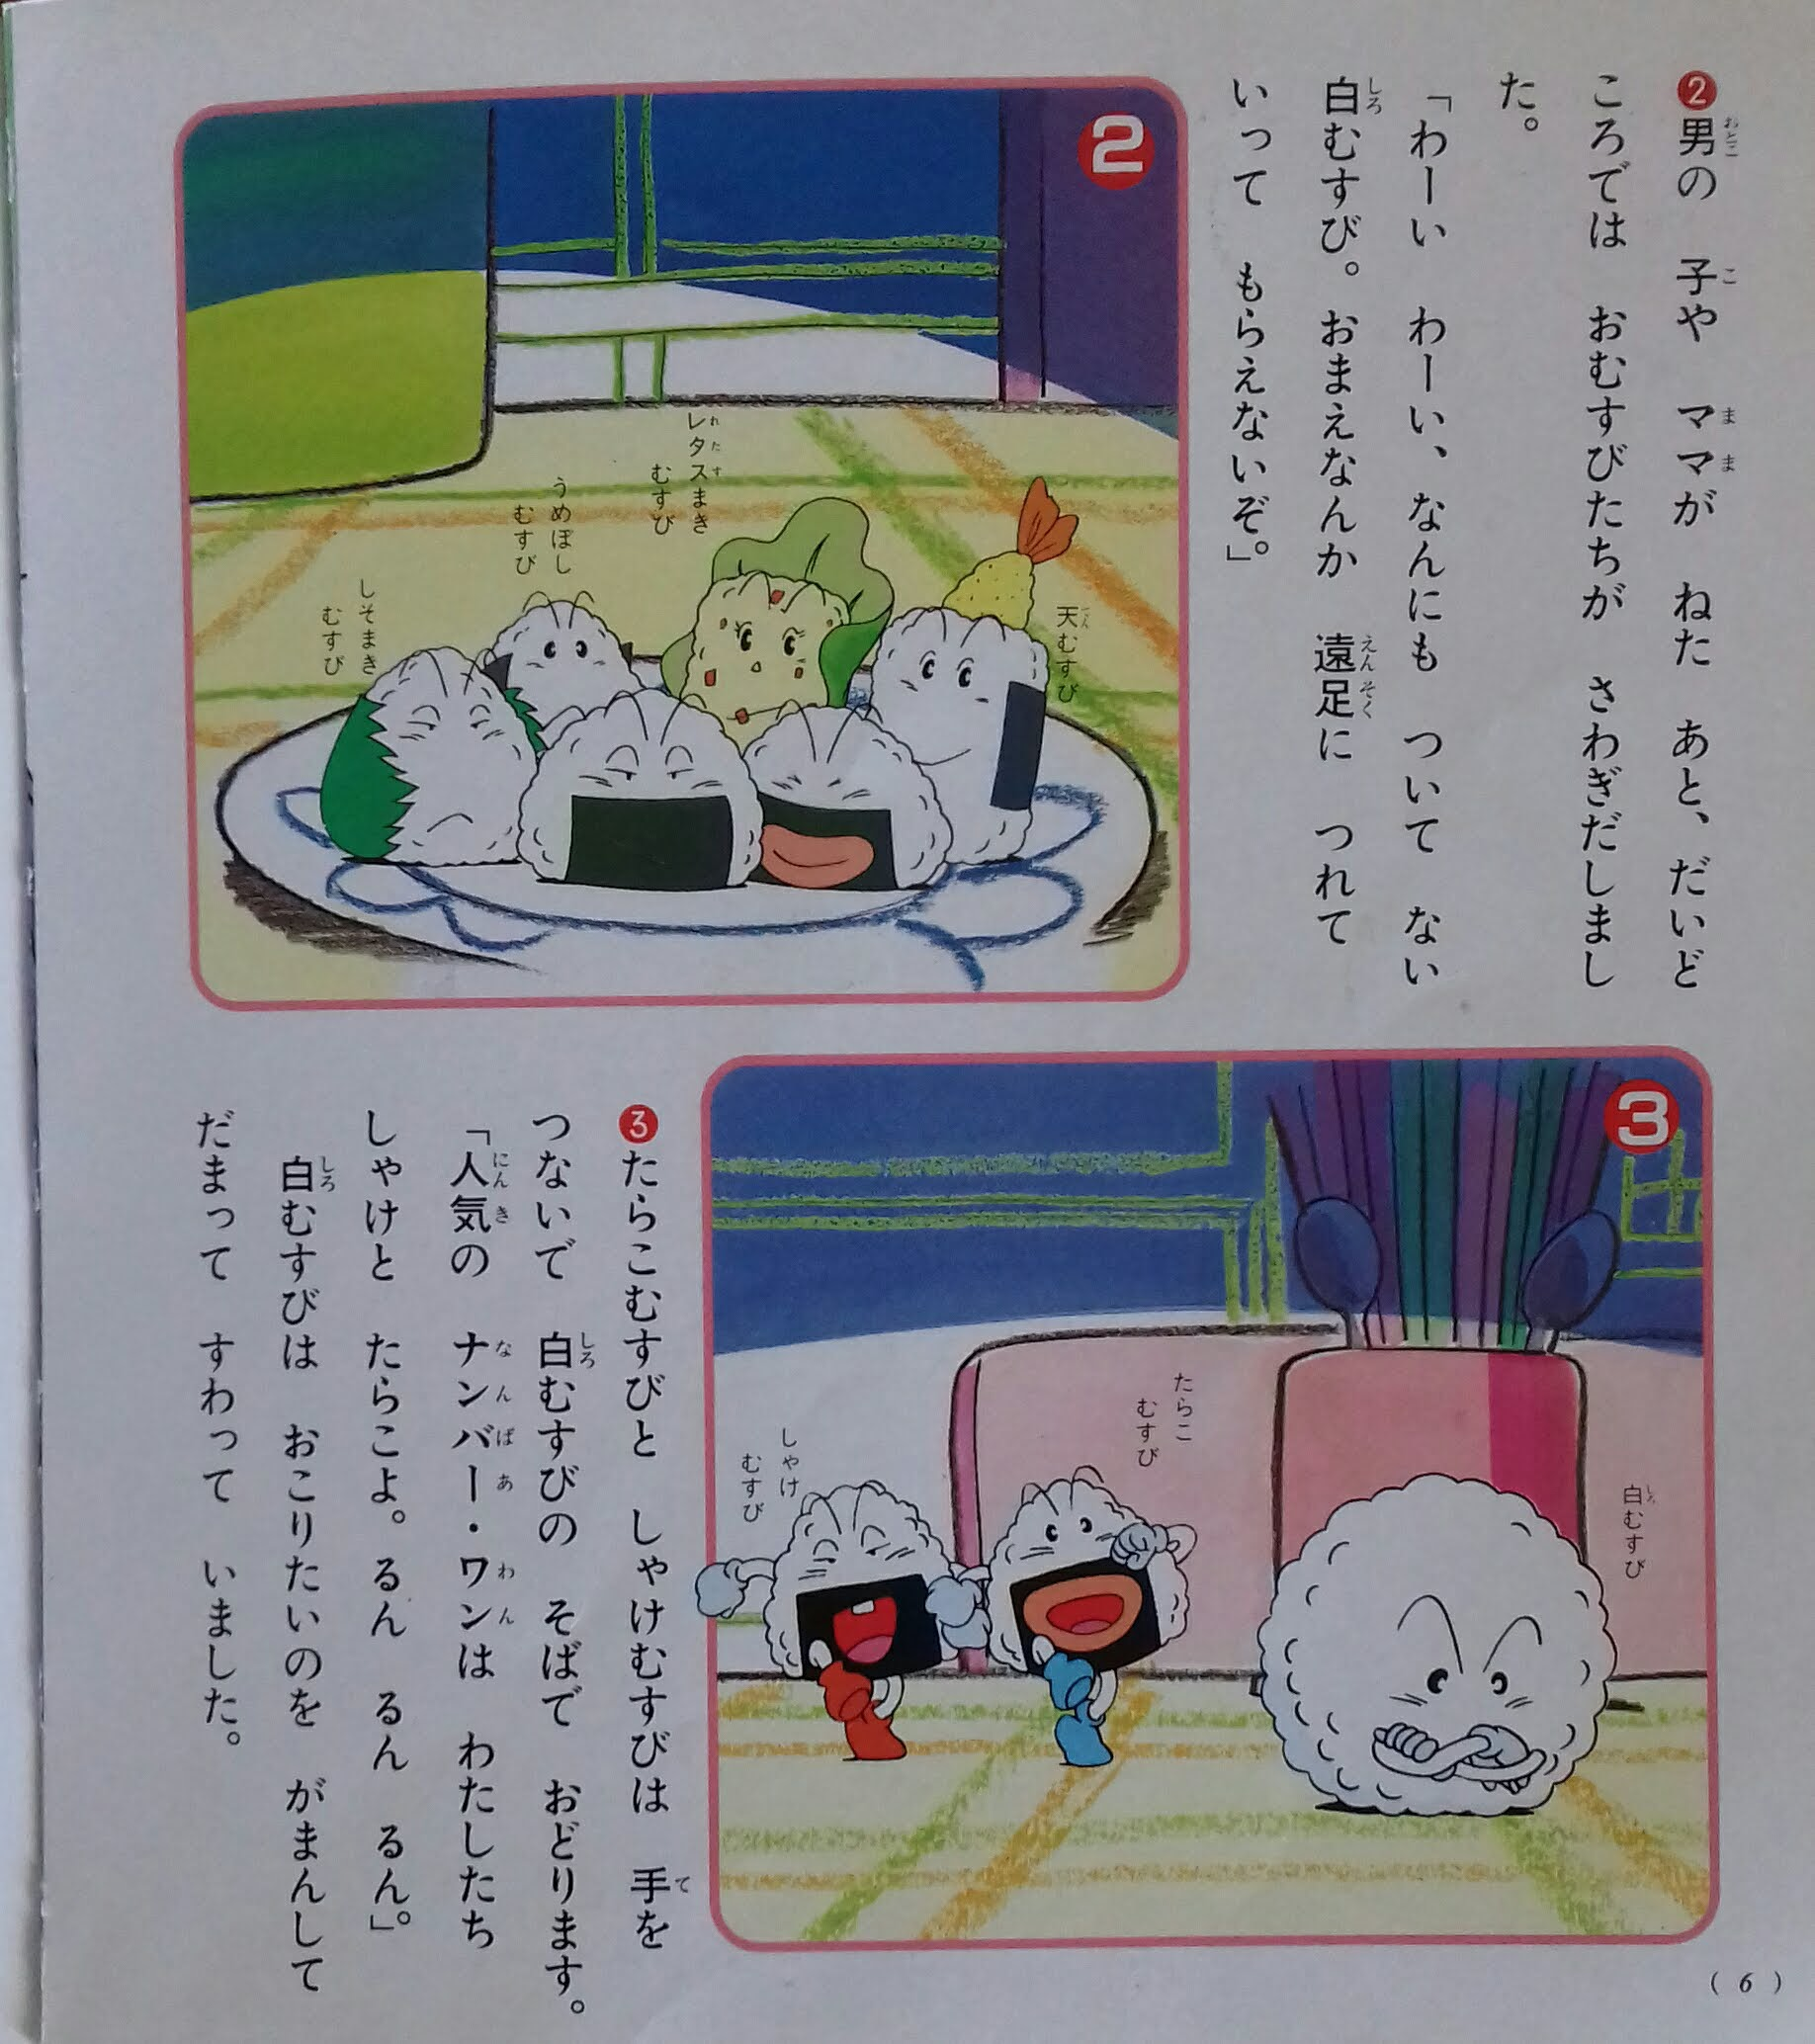 The some rice balls are teasing a white rice ball.  The white rice ball is sitting silently keep his temper.